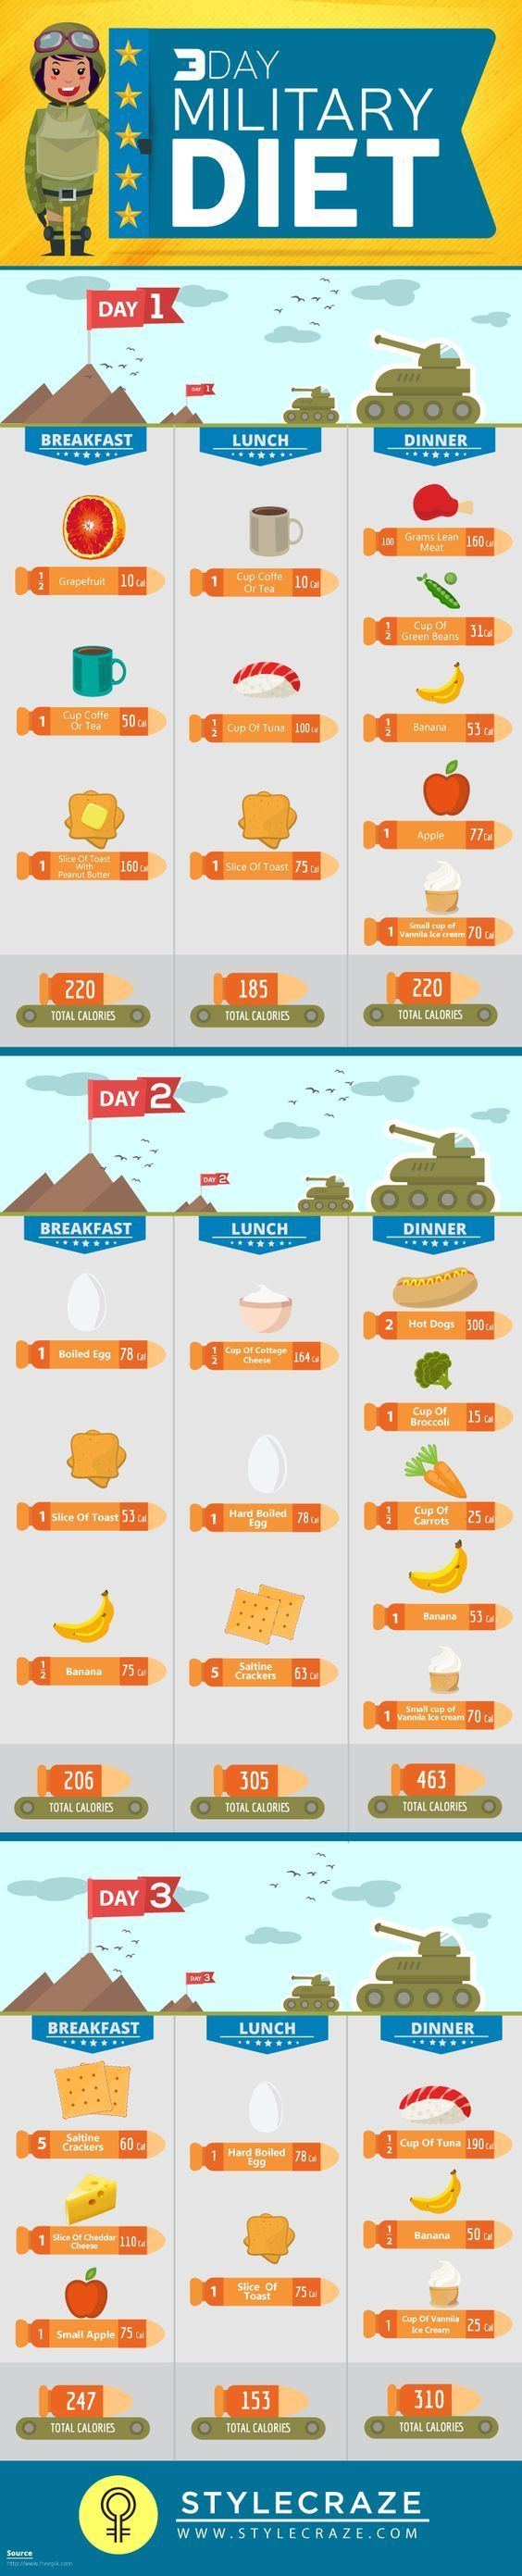 What food can i eat to lose body fat picture 2